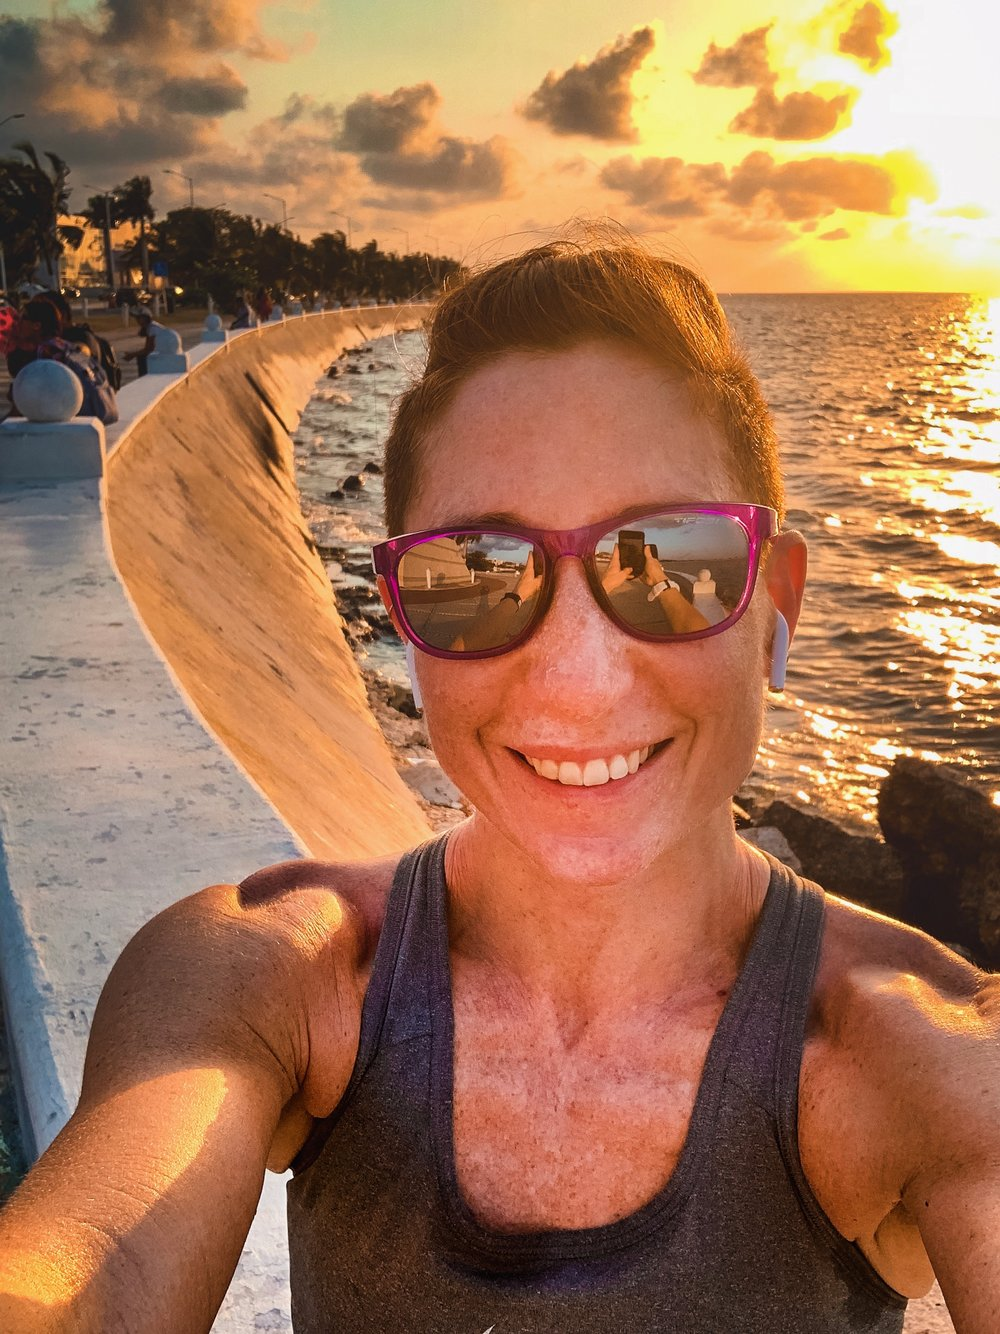 Me feeling all the feels during my Saturday sunset run in Campeche.